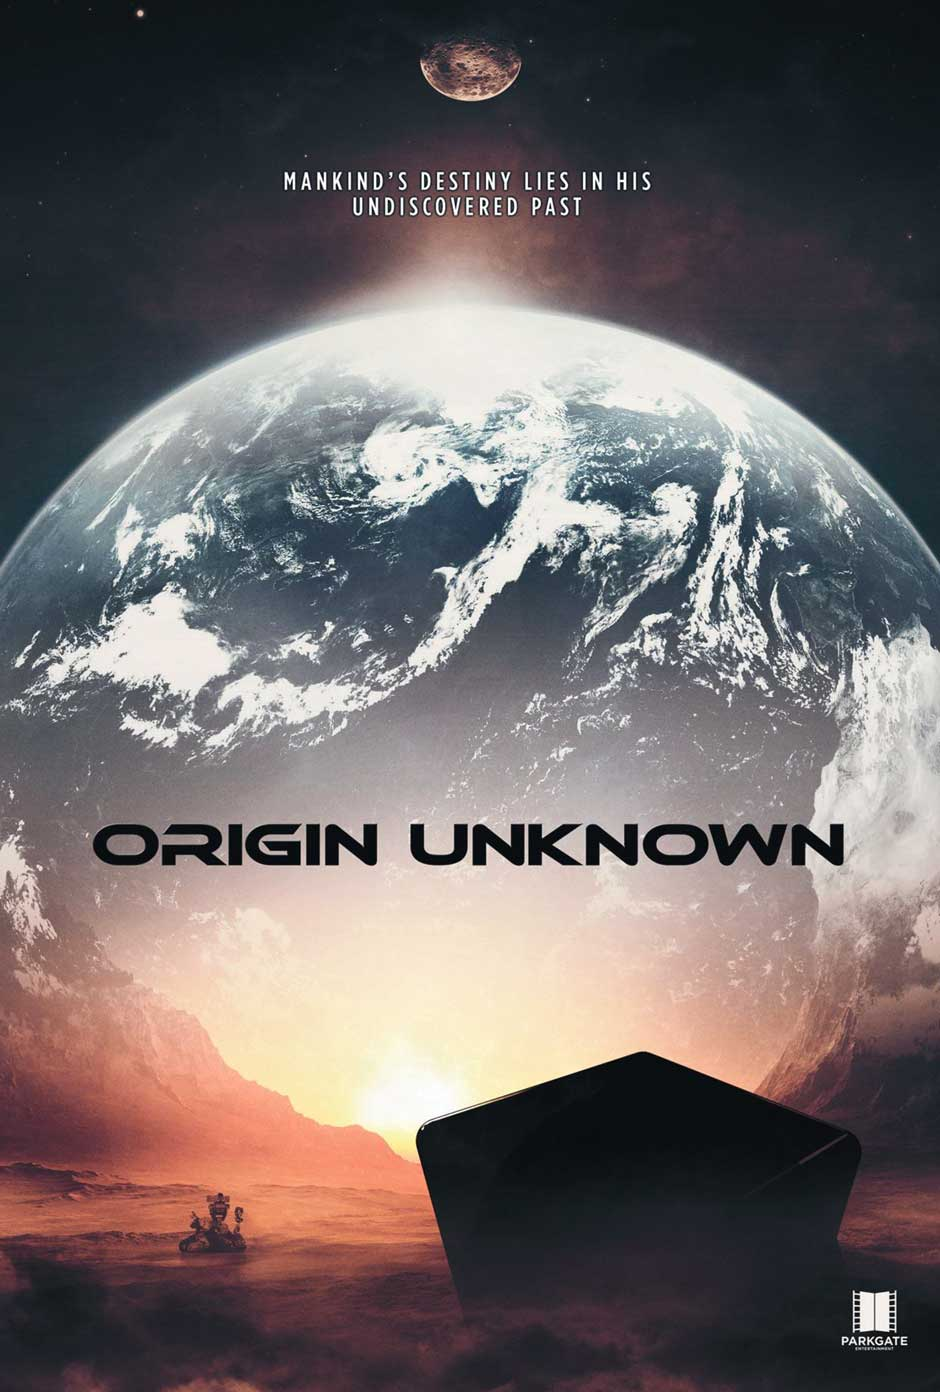 Origin unknown Film Sale, film sales agent, film sales agent london, film sales representation